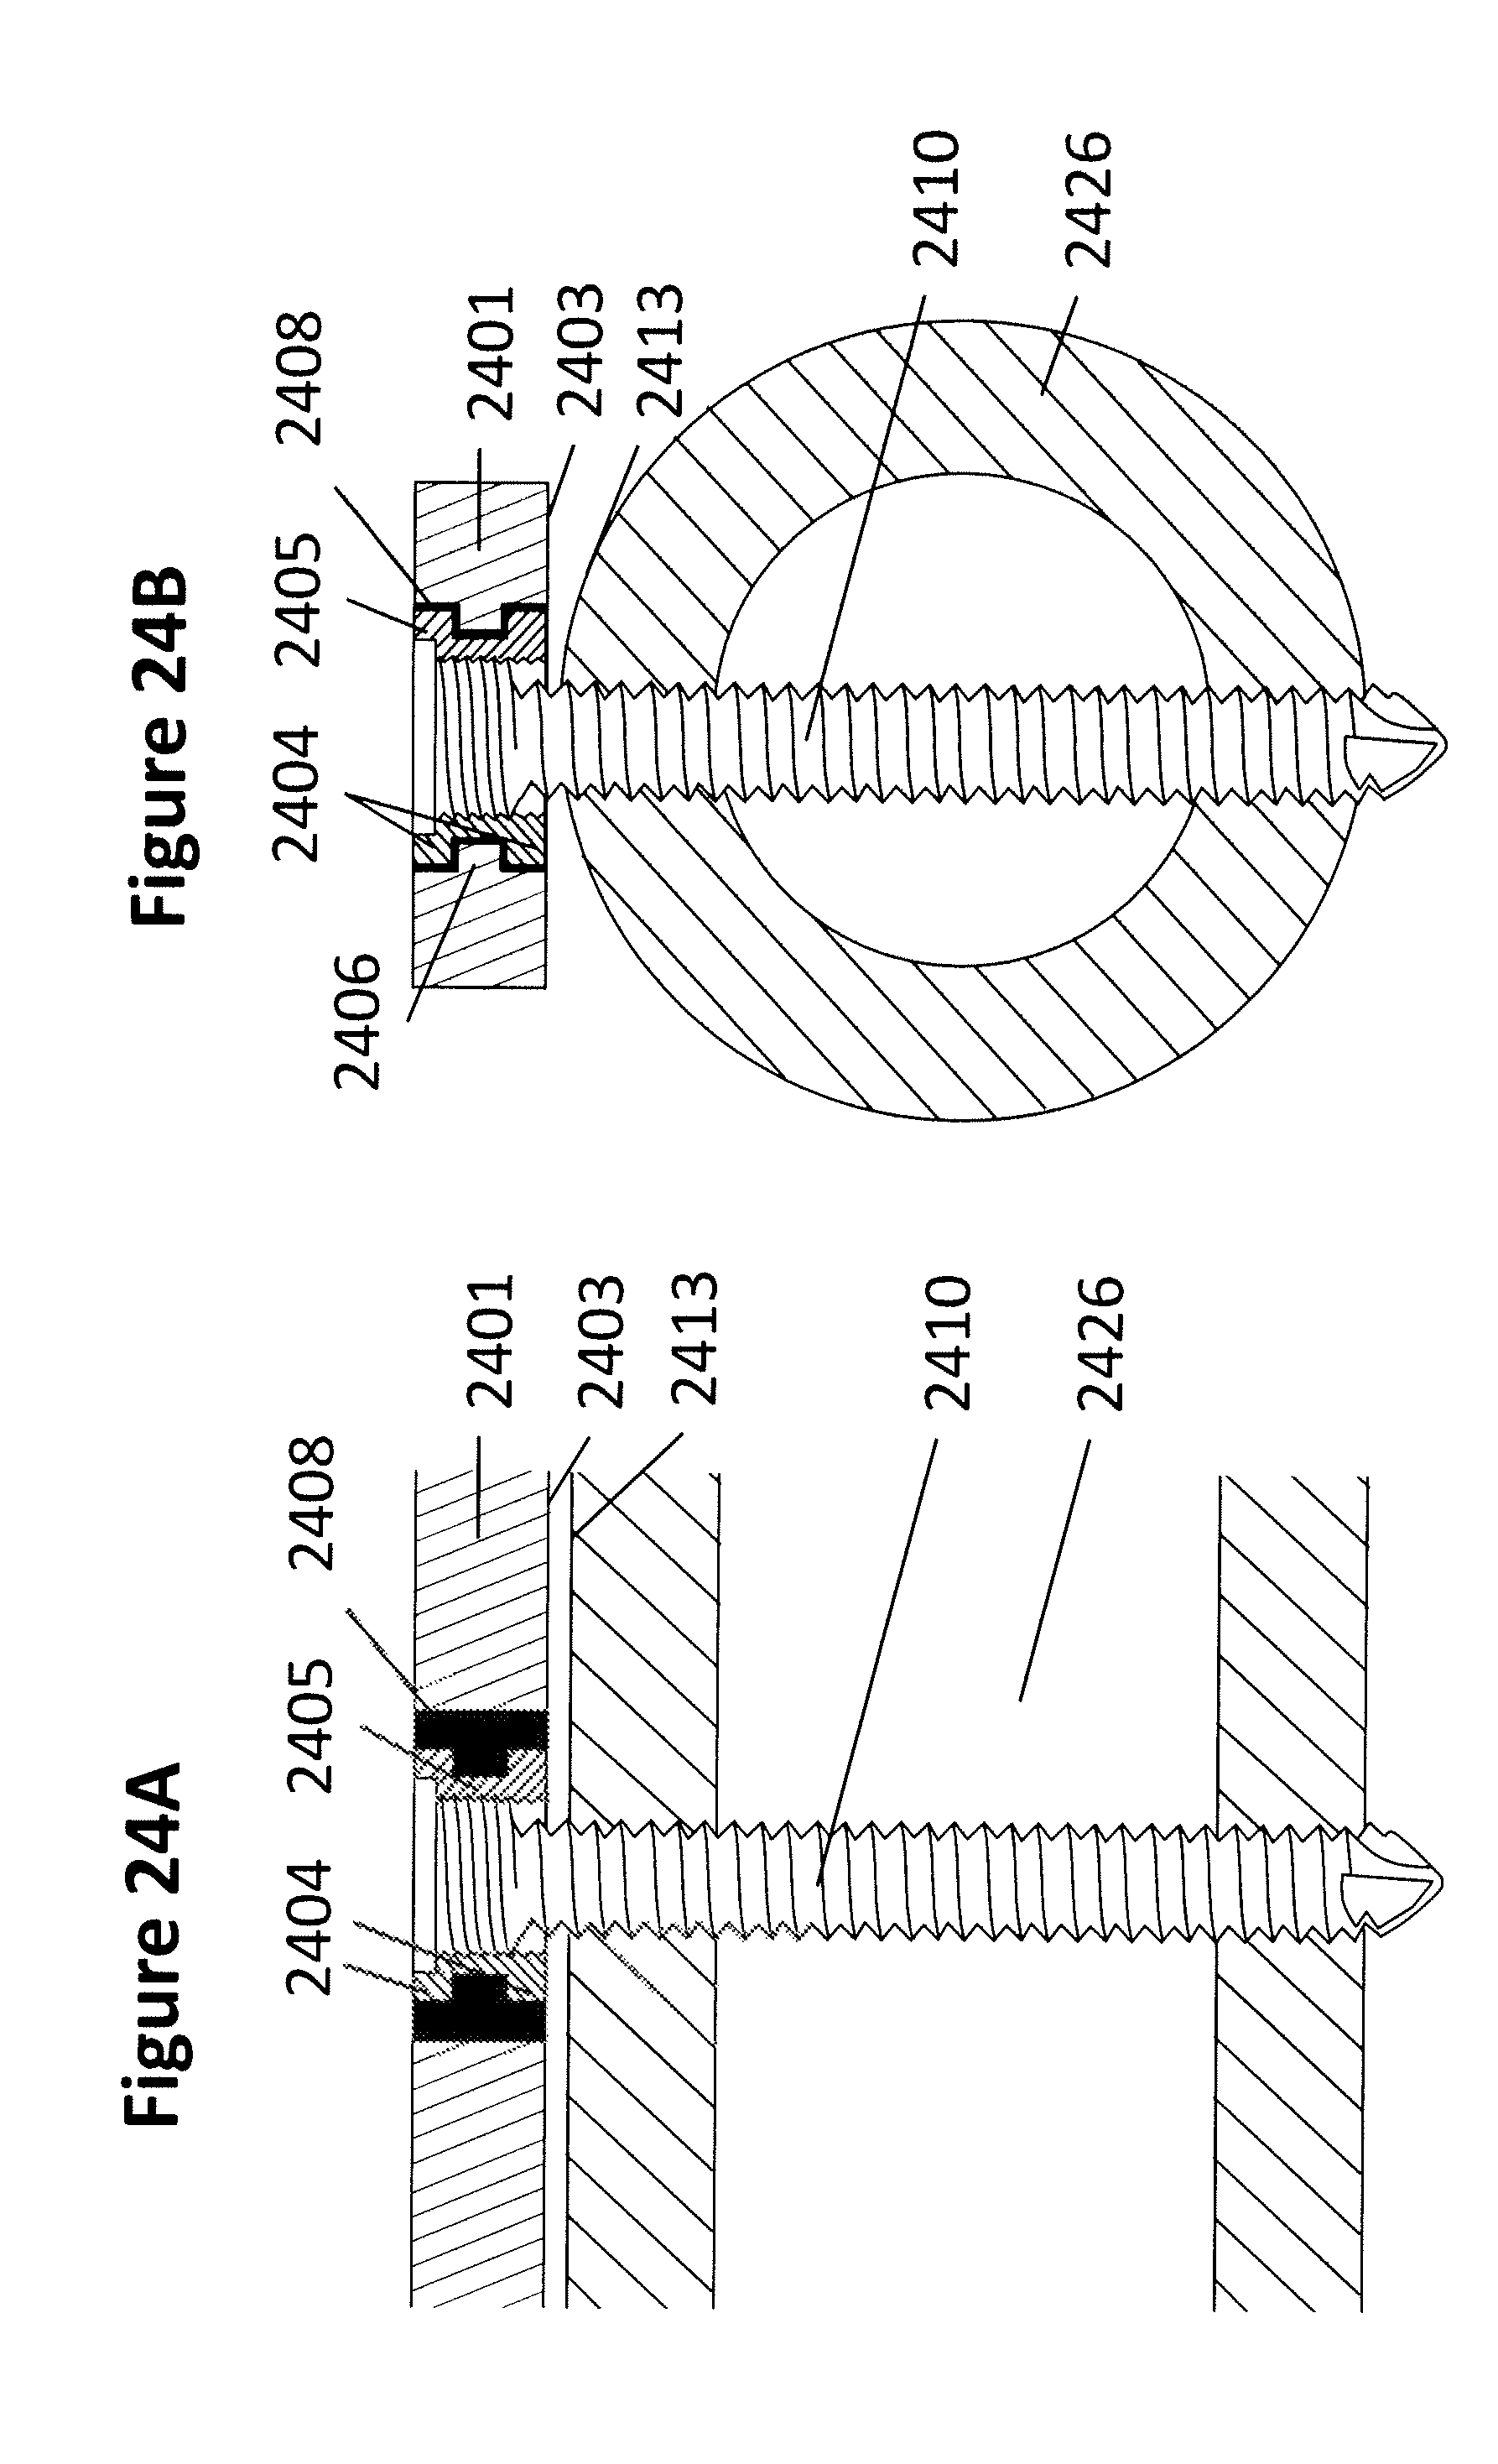 Elastic plate osteosynthesis